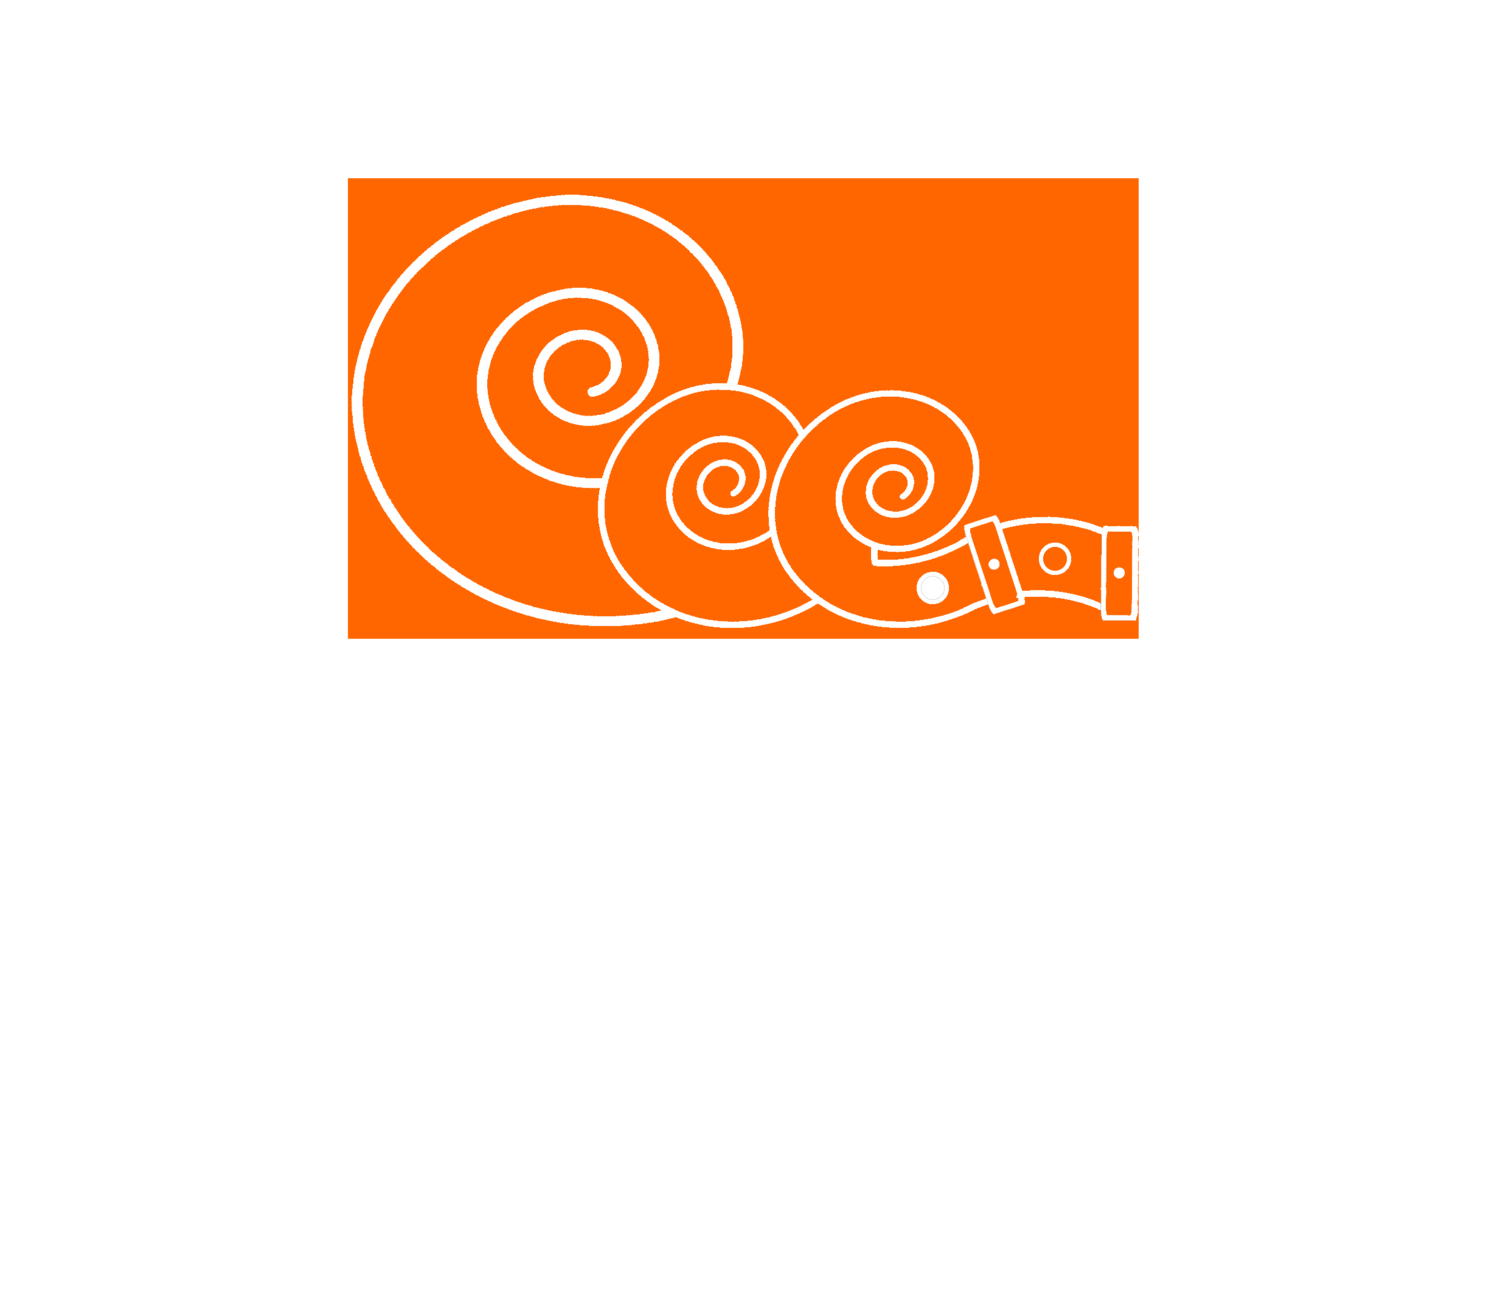 Maxim Strings / Wedding quartet wedding Music in Napa, Sonoma